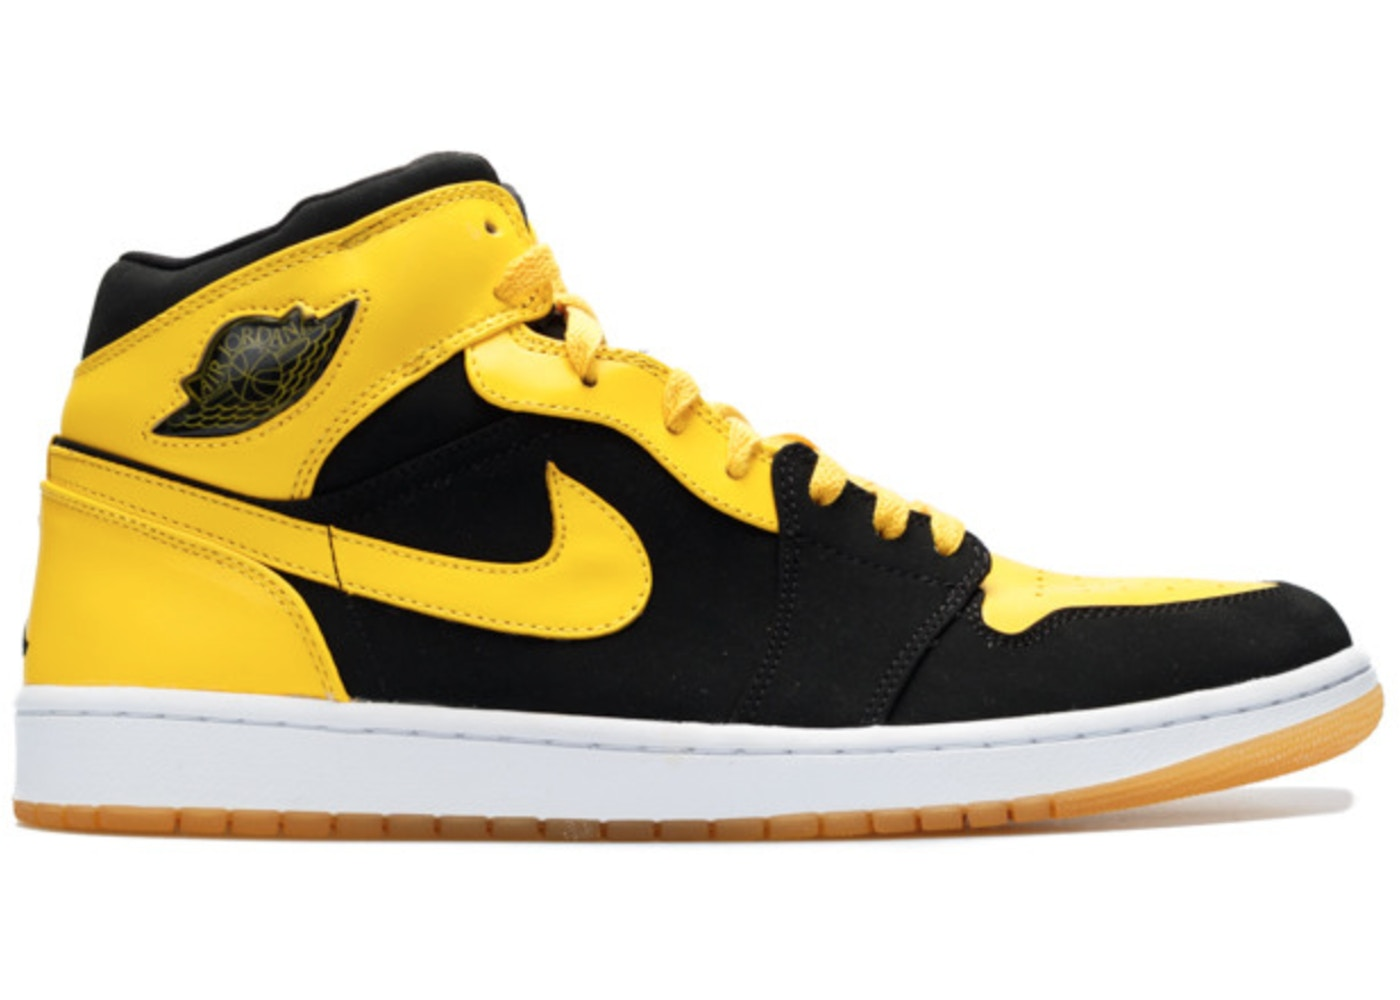 new products c9a29 40876 Jordan 1 Retro Beginning Moments Pack (BMP) New Love